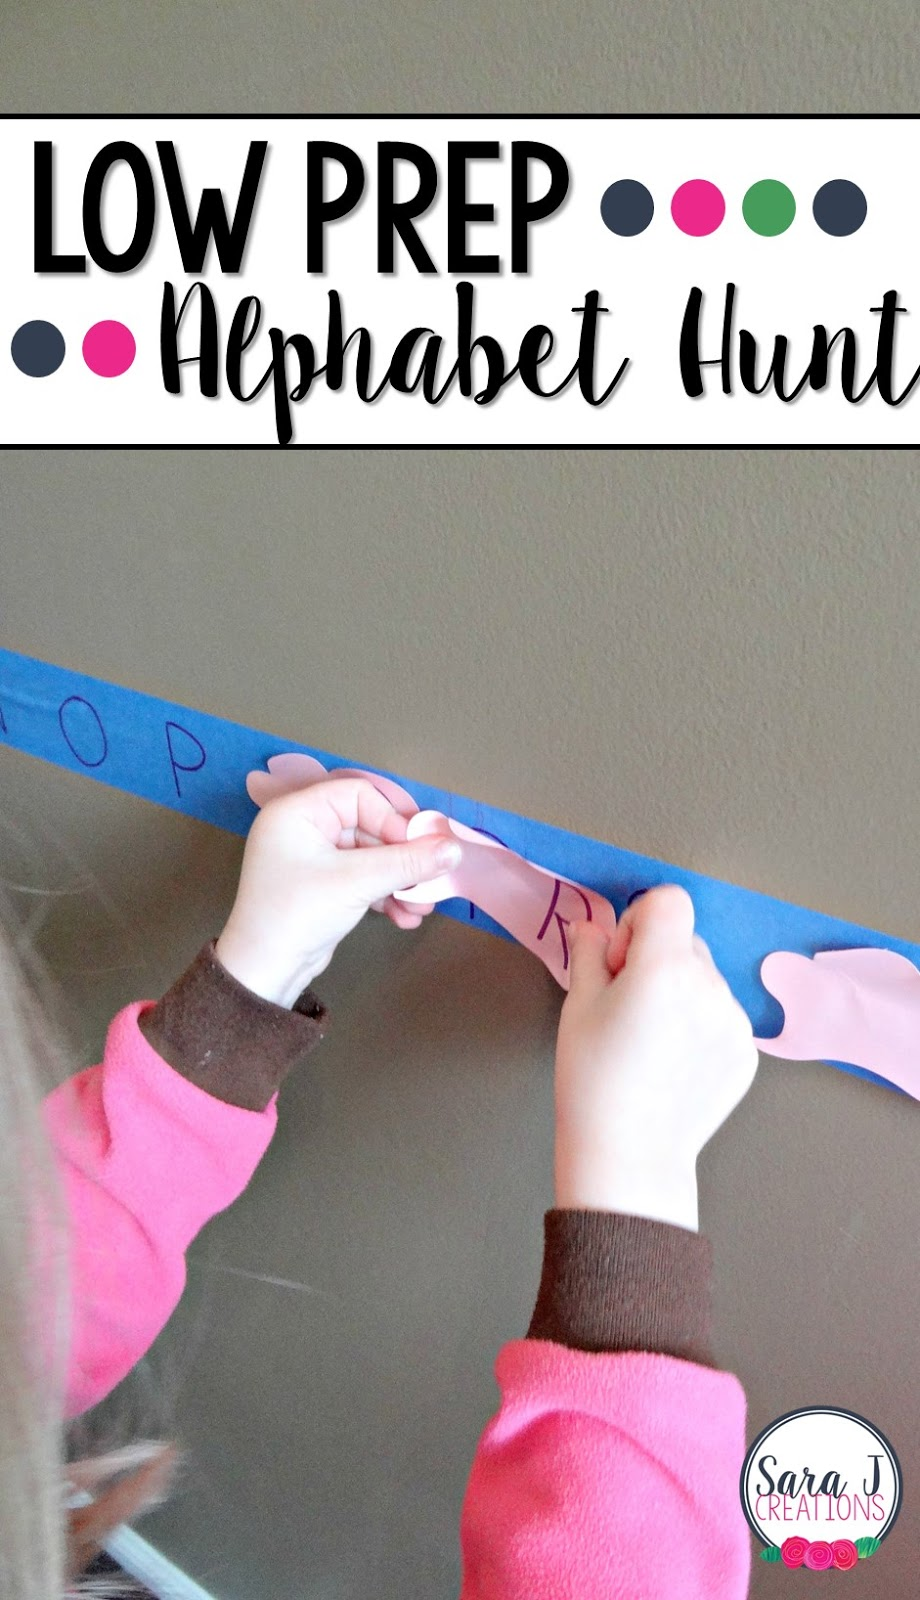 An alphabet hunt that you can quickly set up using painters tape and sticky notes. Easy and fun and a way for little ones to get up and move.